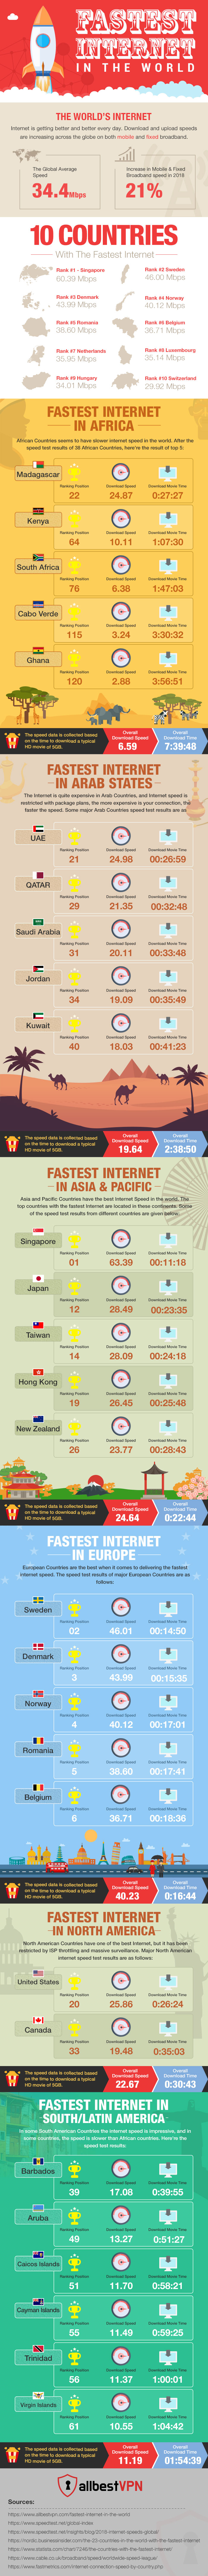 Fastest Vs Slowest: Country-Wise Ranking of Internet Speeds - Infographic